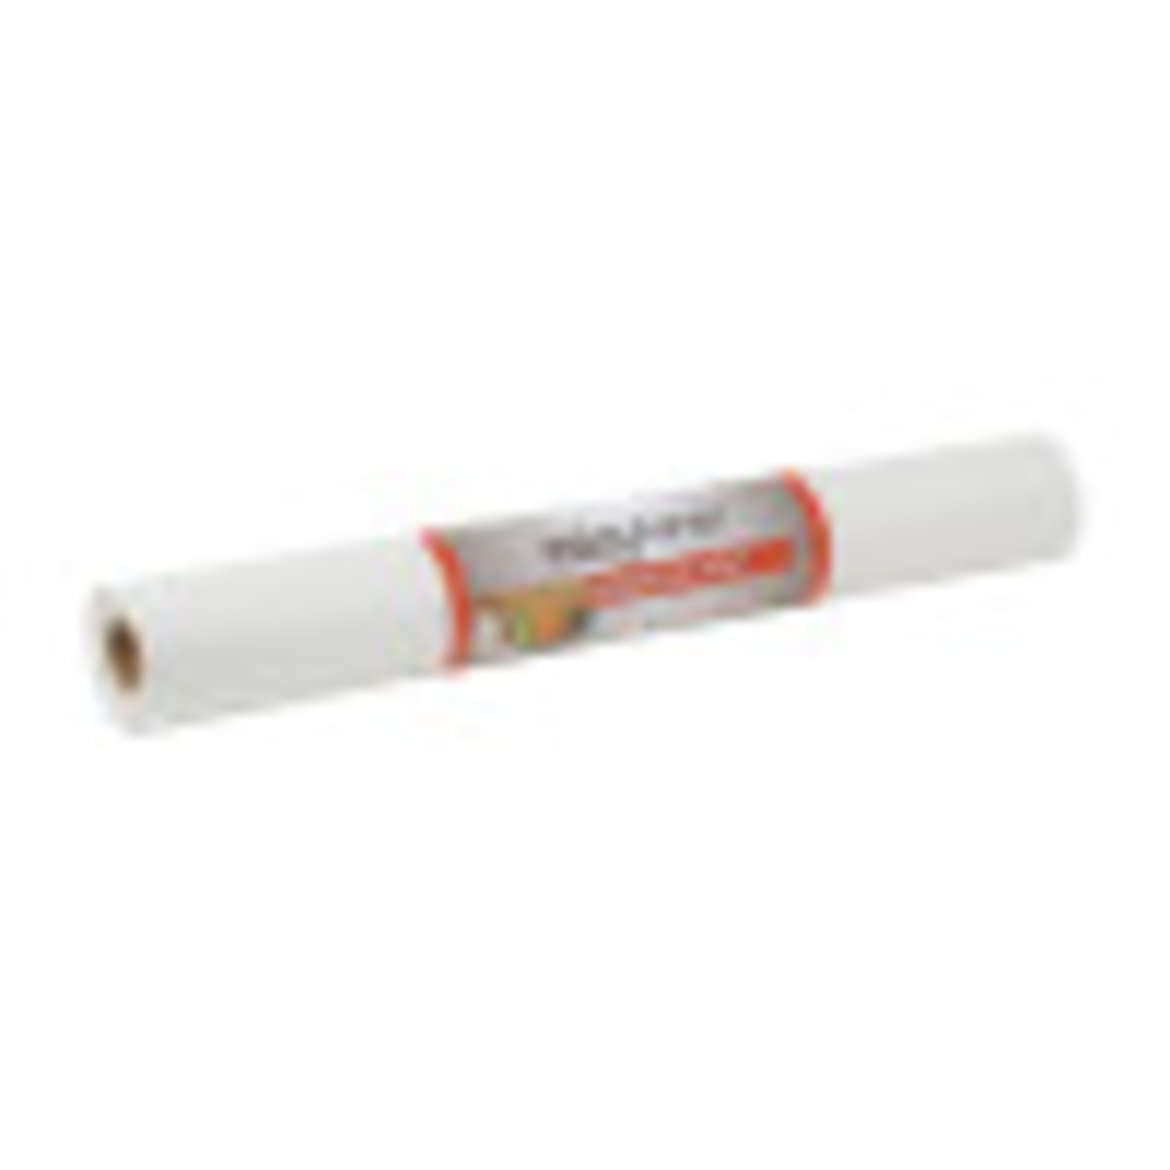 Smooth Top® Easy Liner® Brand Shelf Liner - White, 20 in. x 6 ft. Image